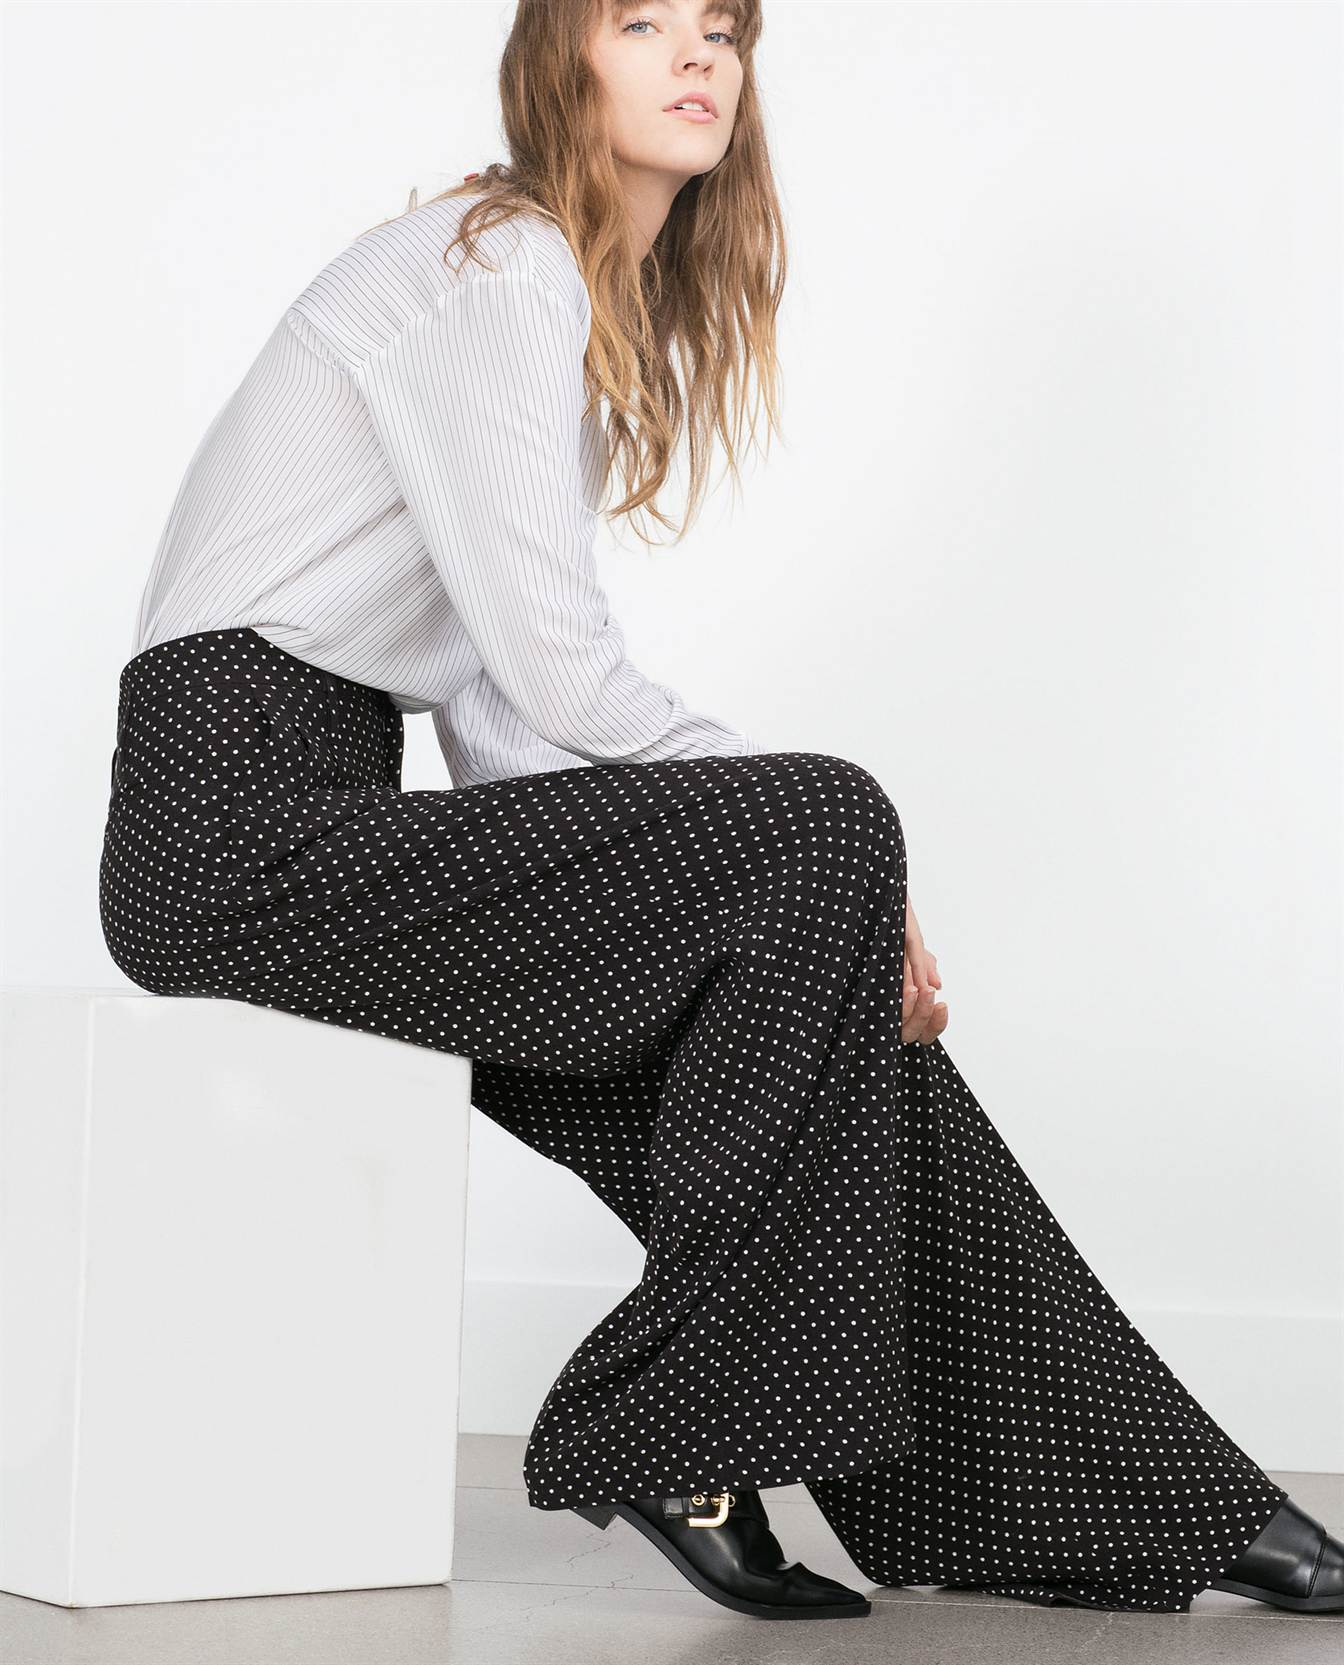 13_zara-black-polka-dot-trousers-polka-dot-trousers-product-2-316114016-normal